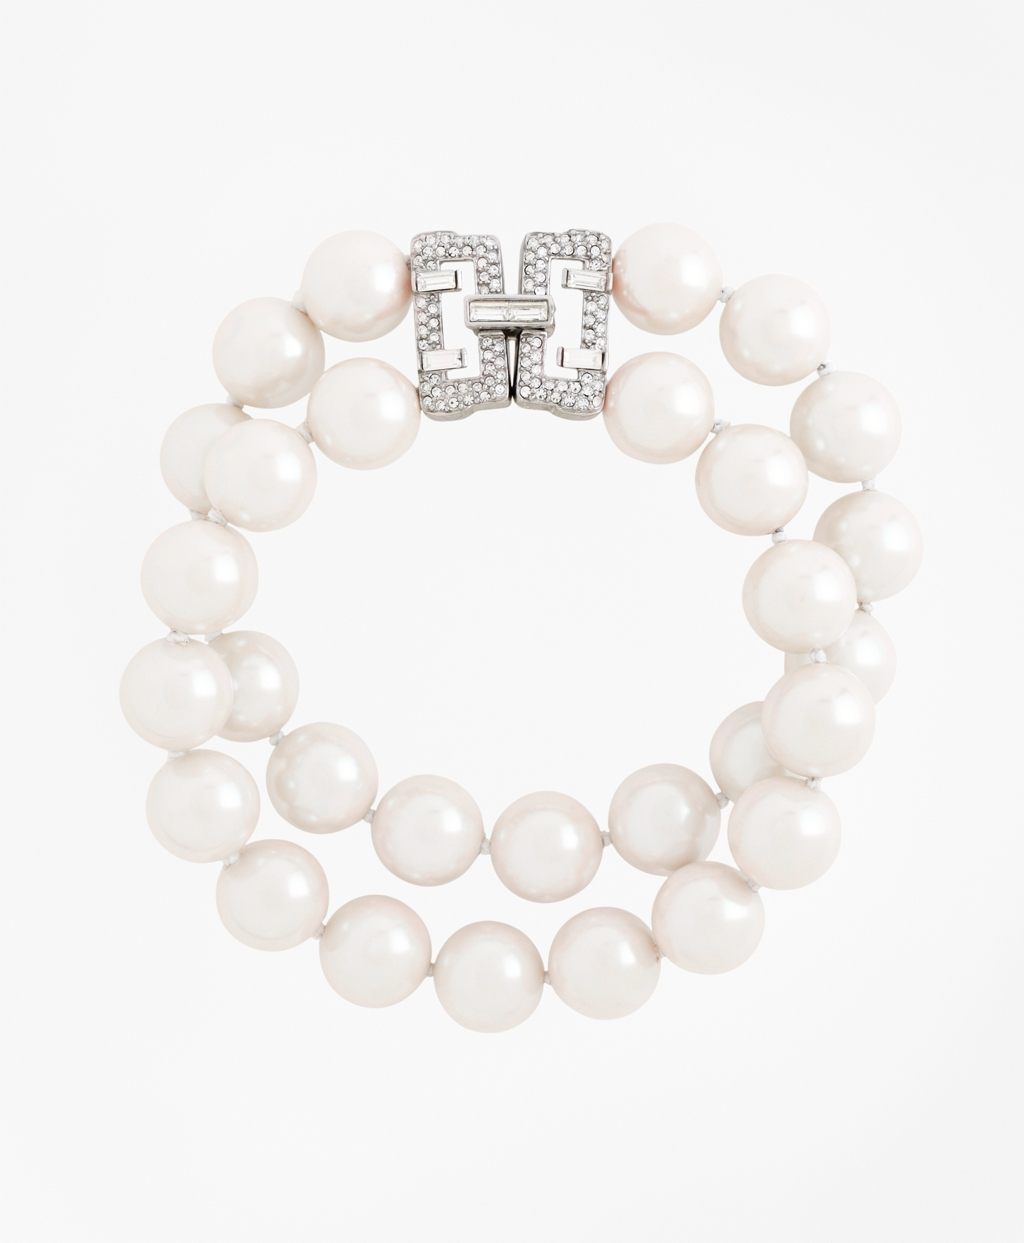 1930s Jewelry | Art Deco Style Jewelry Brooks Brothers Womens Double-Strand Glass Pearl Bracelet $298.00 AT vintagedancer.com